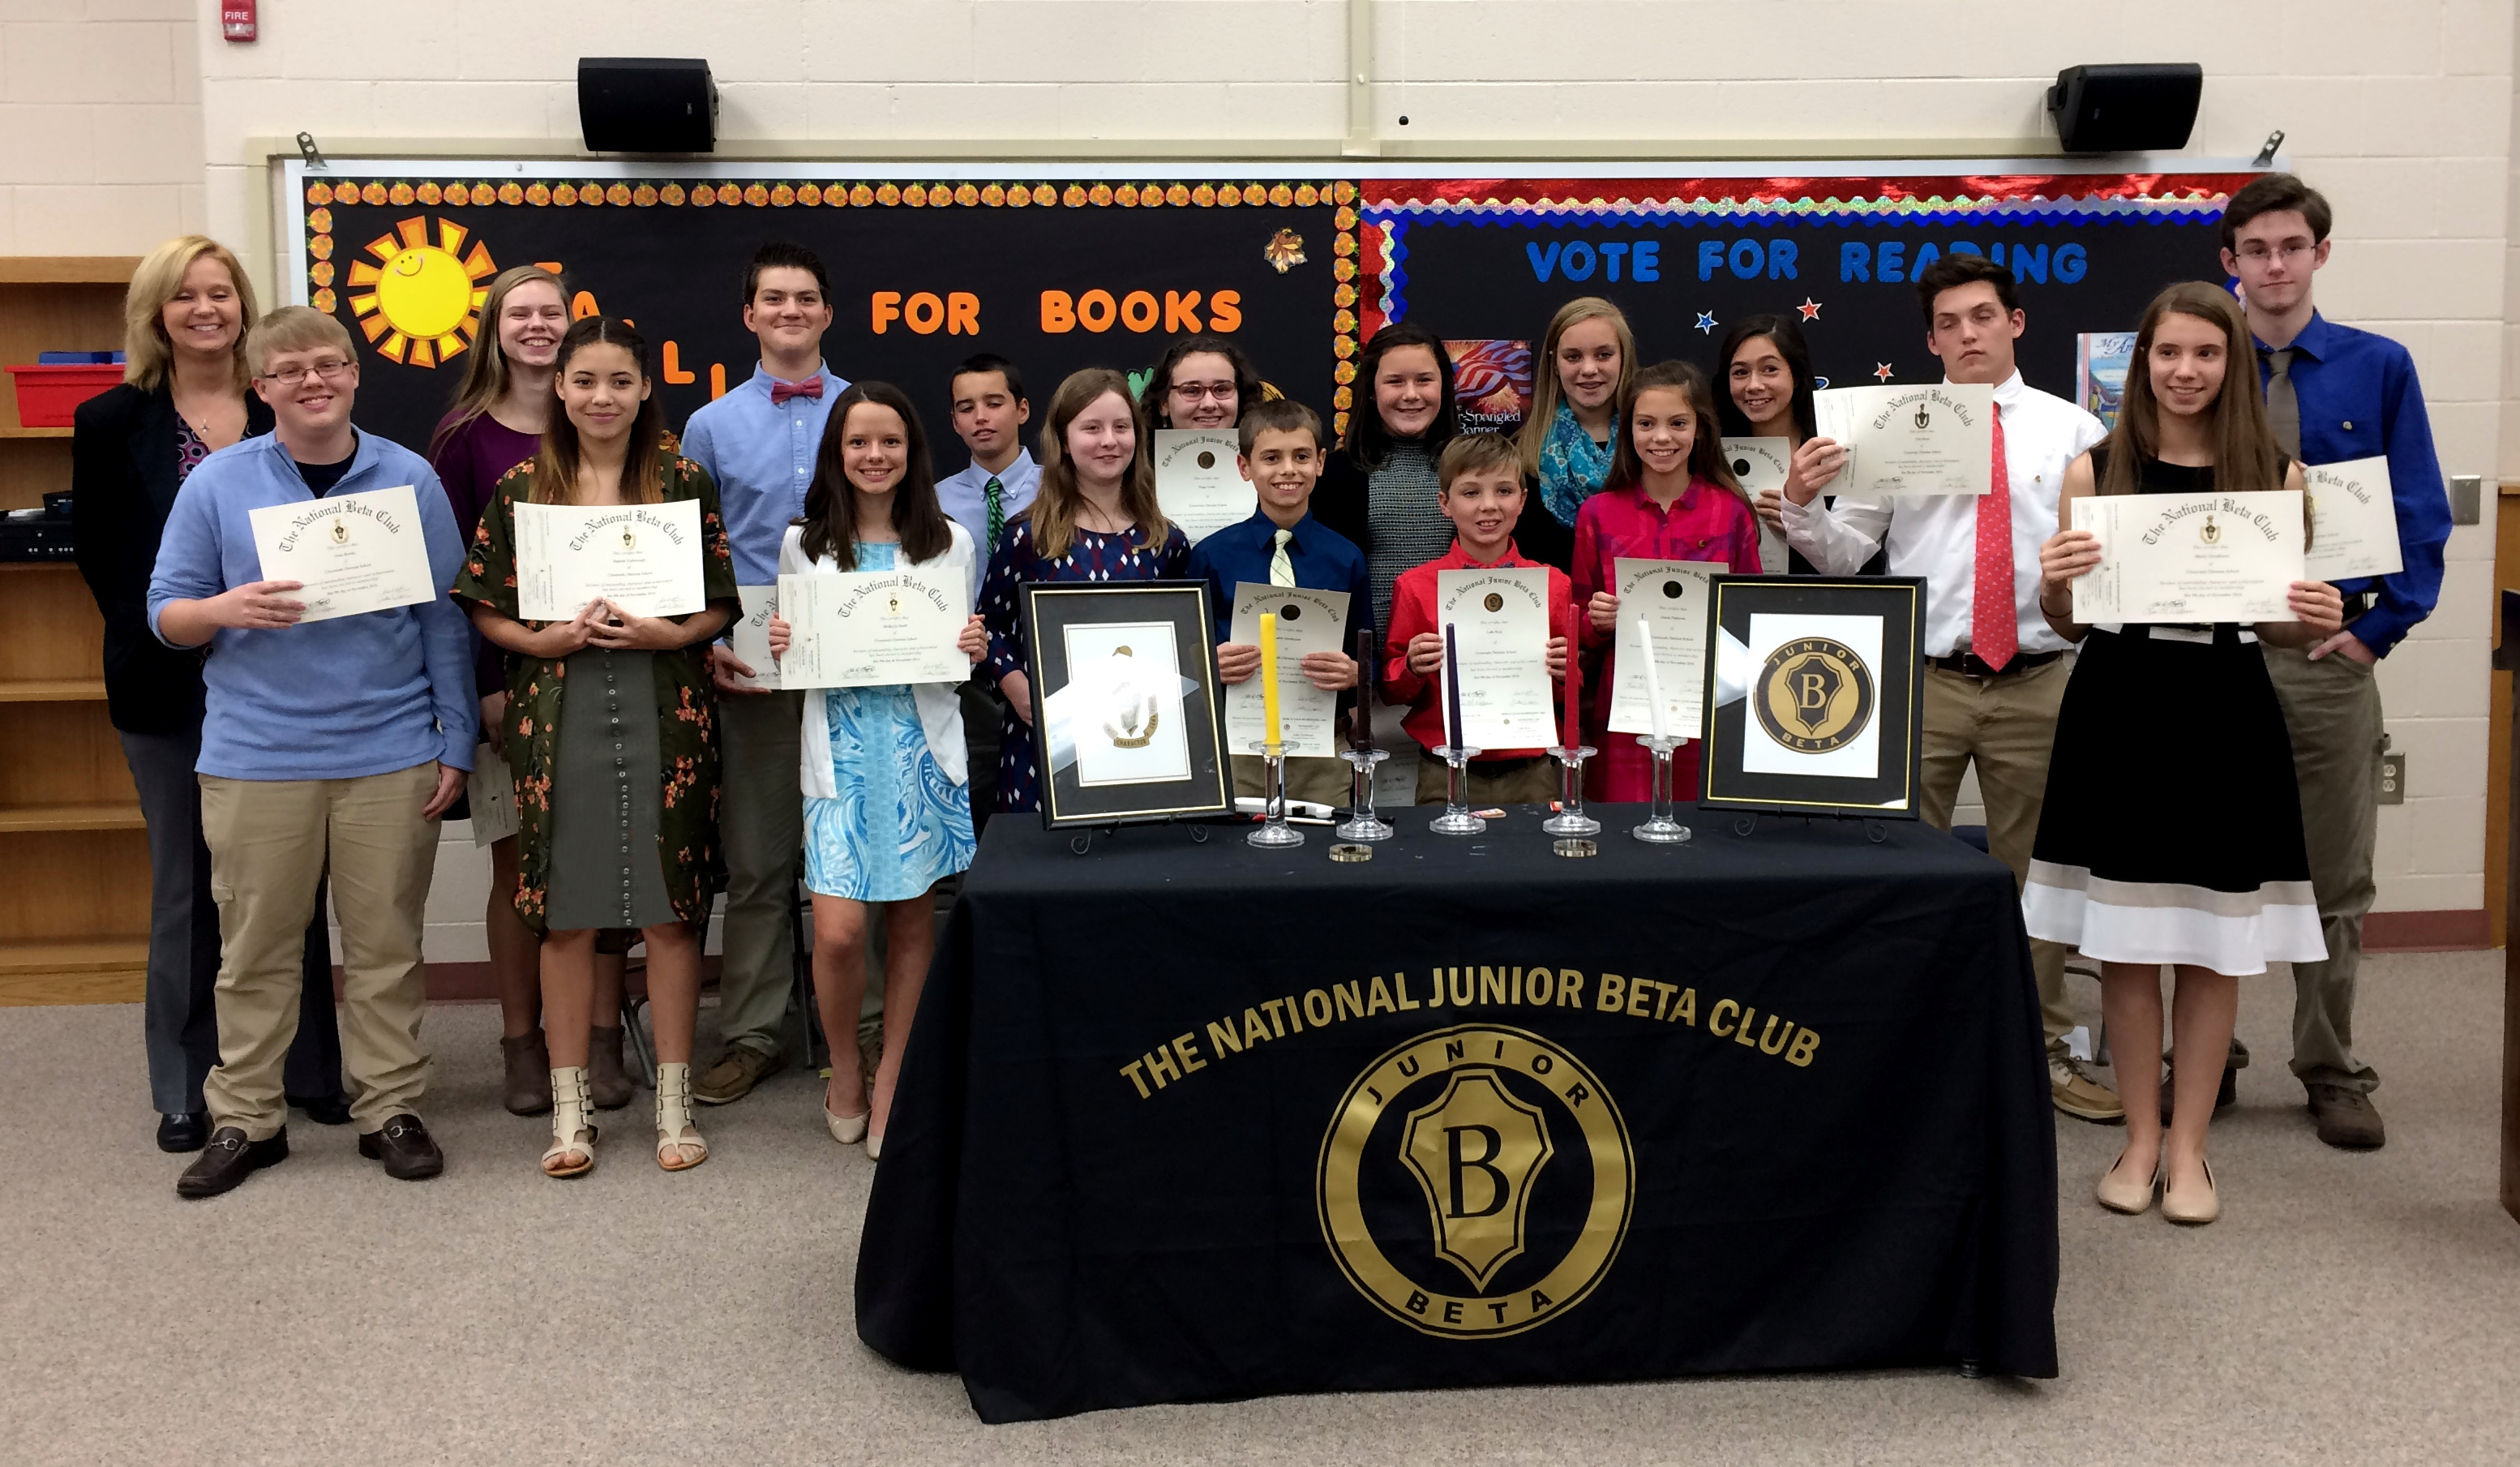 2016-17 Beta Club Induction